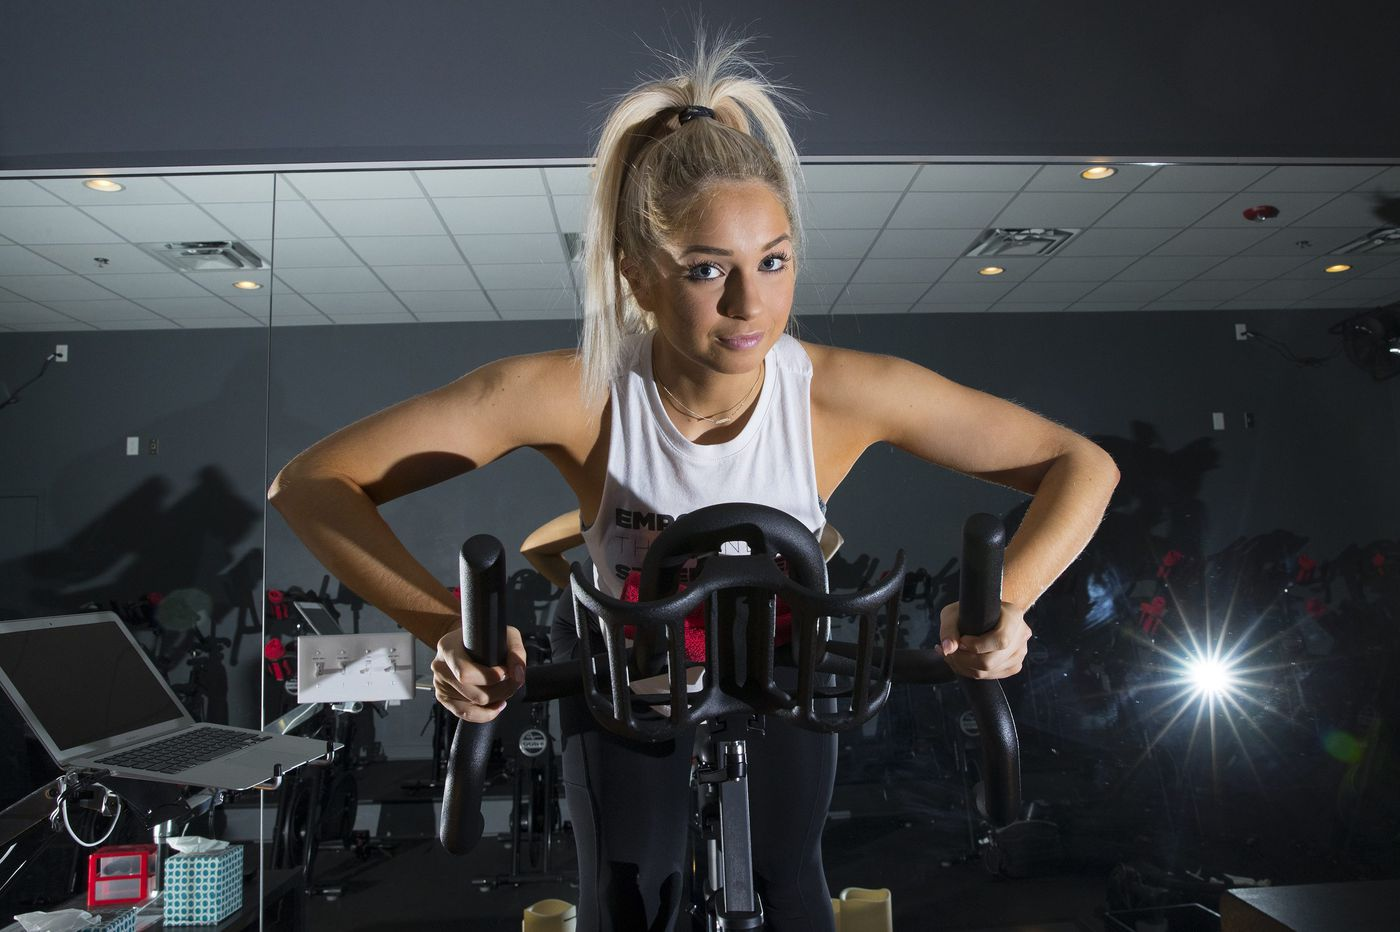 Tori DiSimone used to make thousands of dollars a month on YouTube, but she left it all behind to start a fitness studio